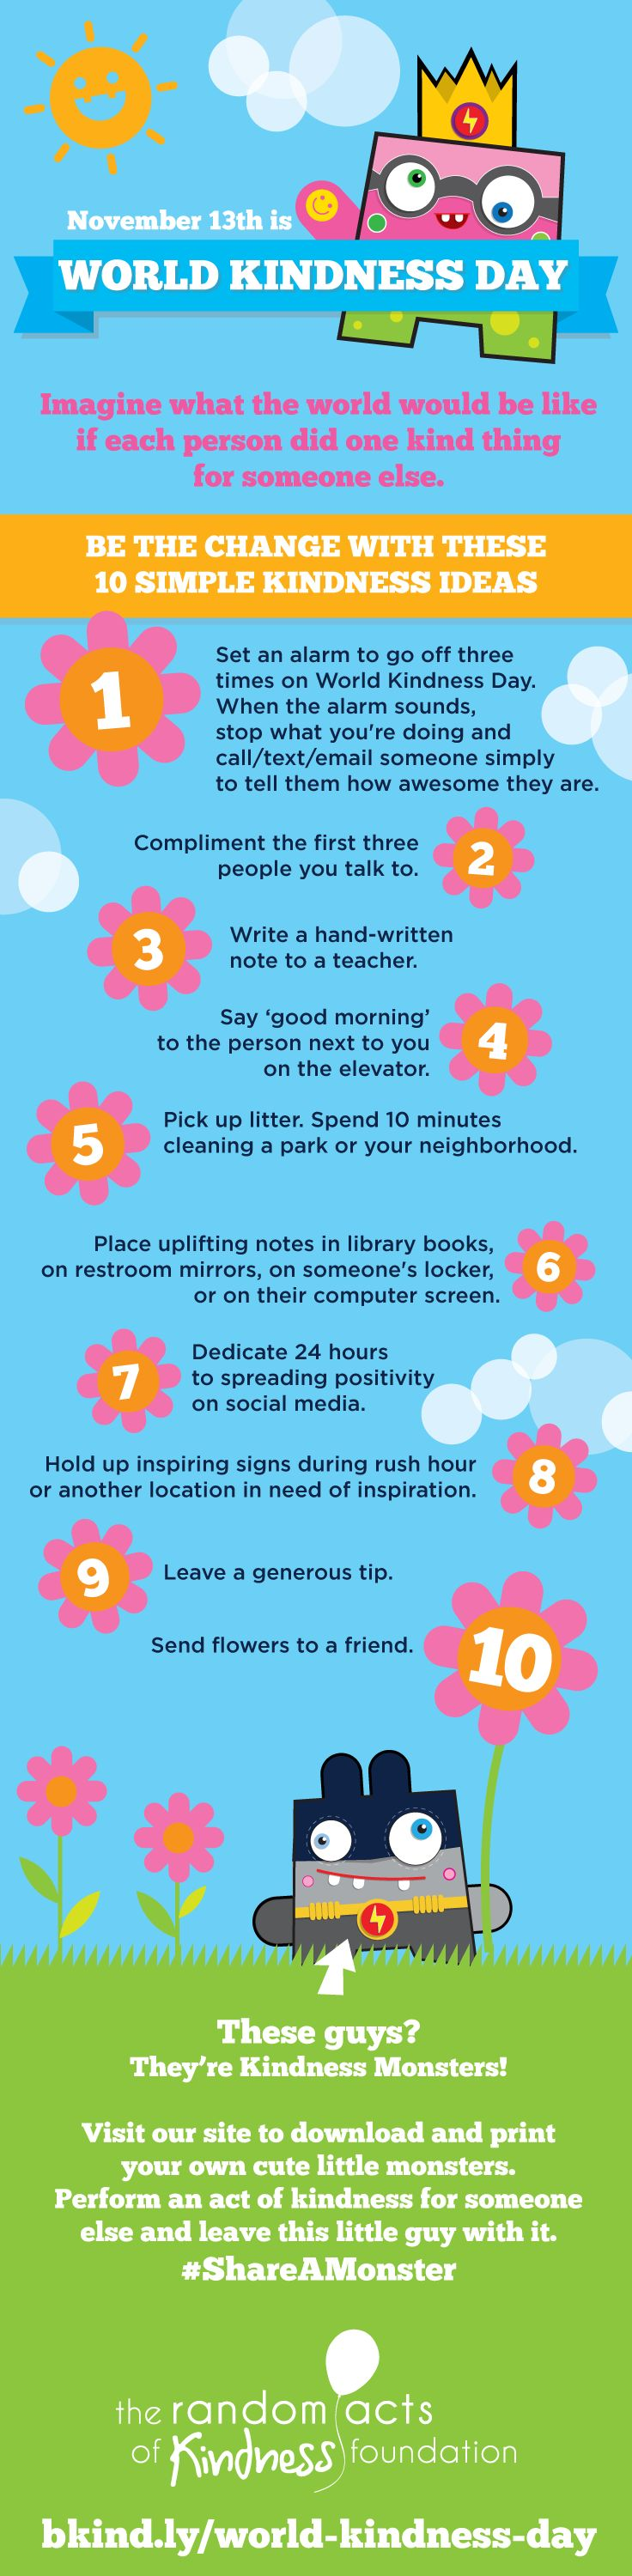 10 Simple Kindness Ideas for World Kindness Day, November 13. #WorldKindnessDay #ShareAMonster